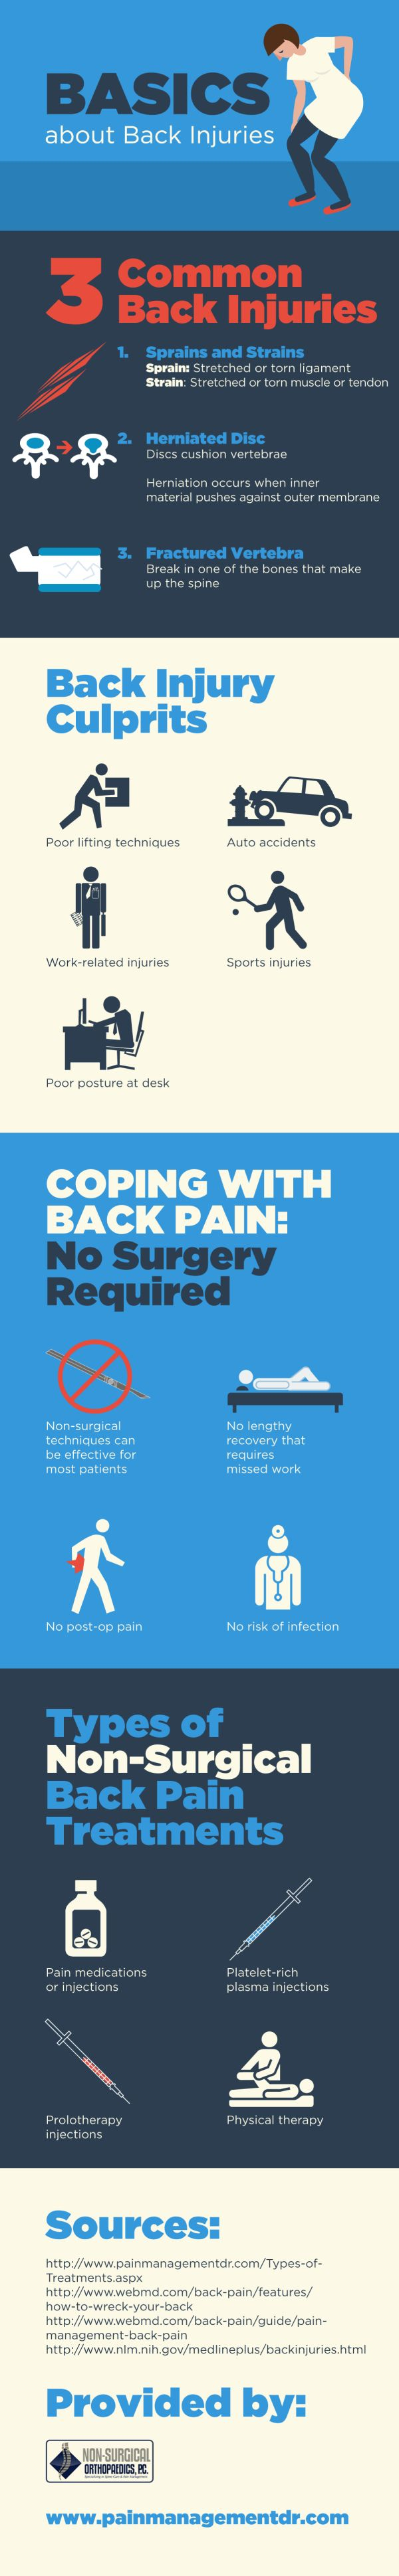 Auto accidents and work-related injuries are some of the most common culprits of back injuries. Check out this infographic from an orthopaedic doctor in Marietta for tips that can help you handle your back pain.